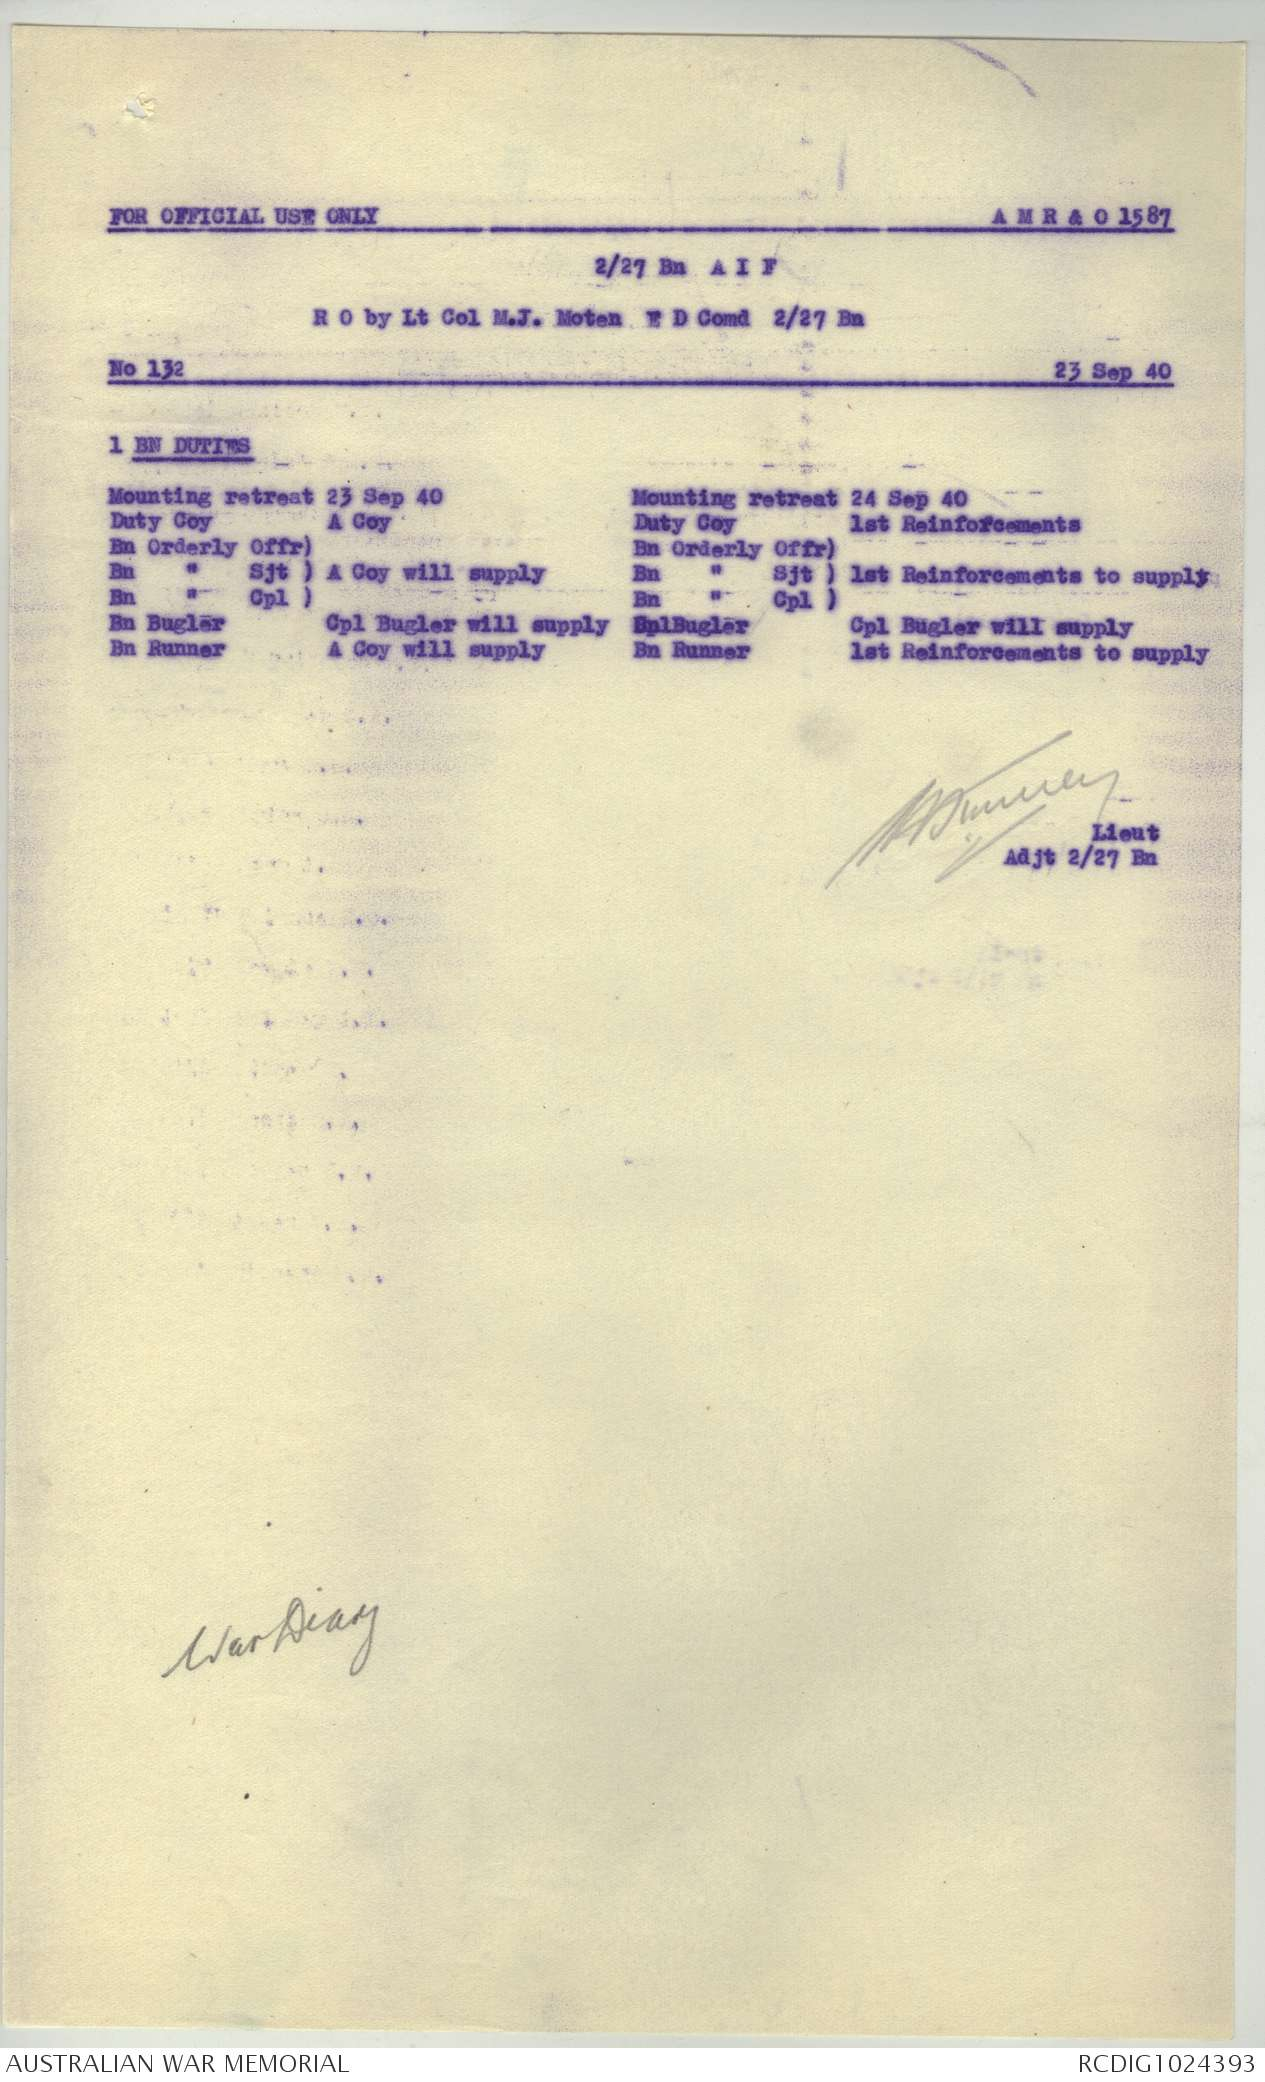 AWM52 8/3/27/9 - September 1940, Appendices, part 1 of 6